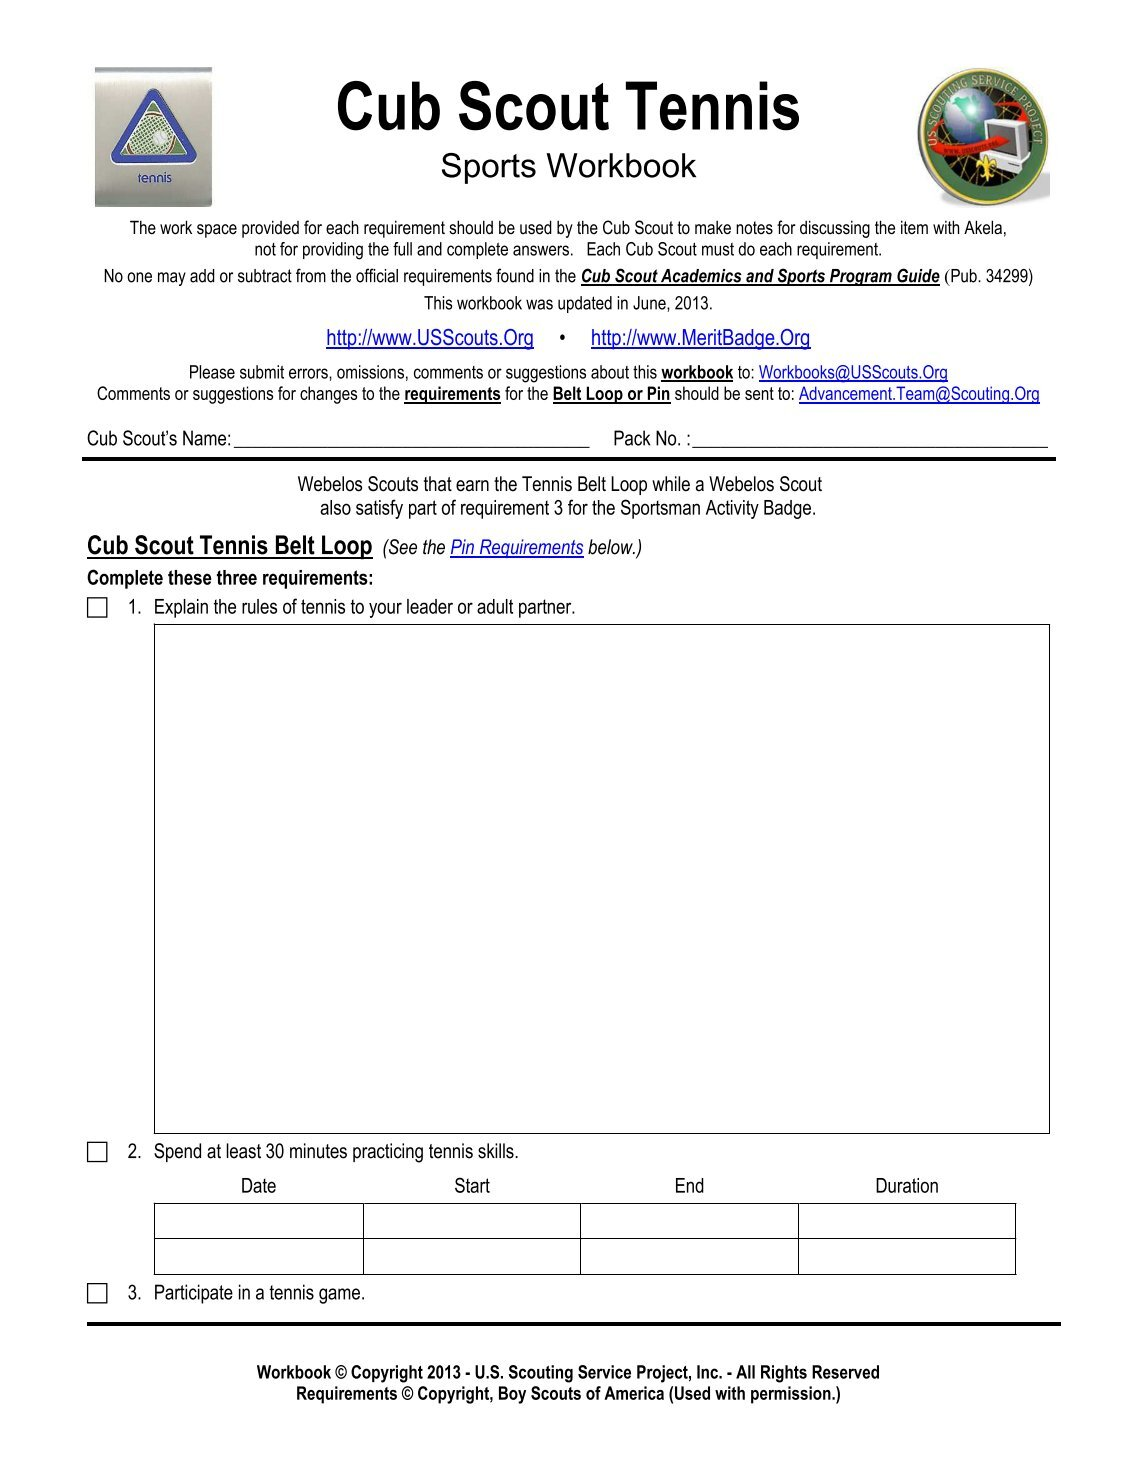 Worksheets Merit Badge Worksheets free worksheets library download and print on webelos naturalist activity badge boy scouts